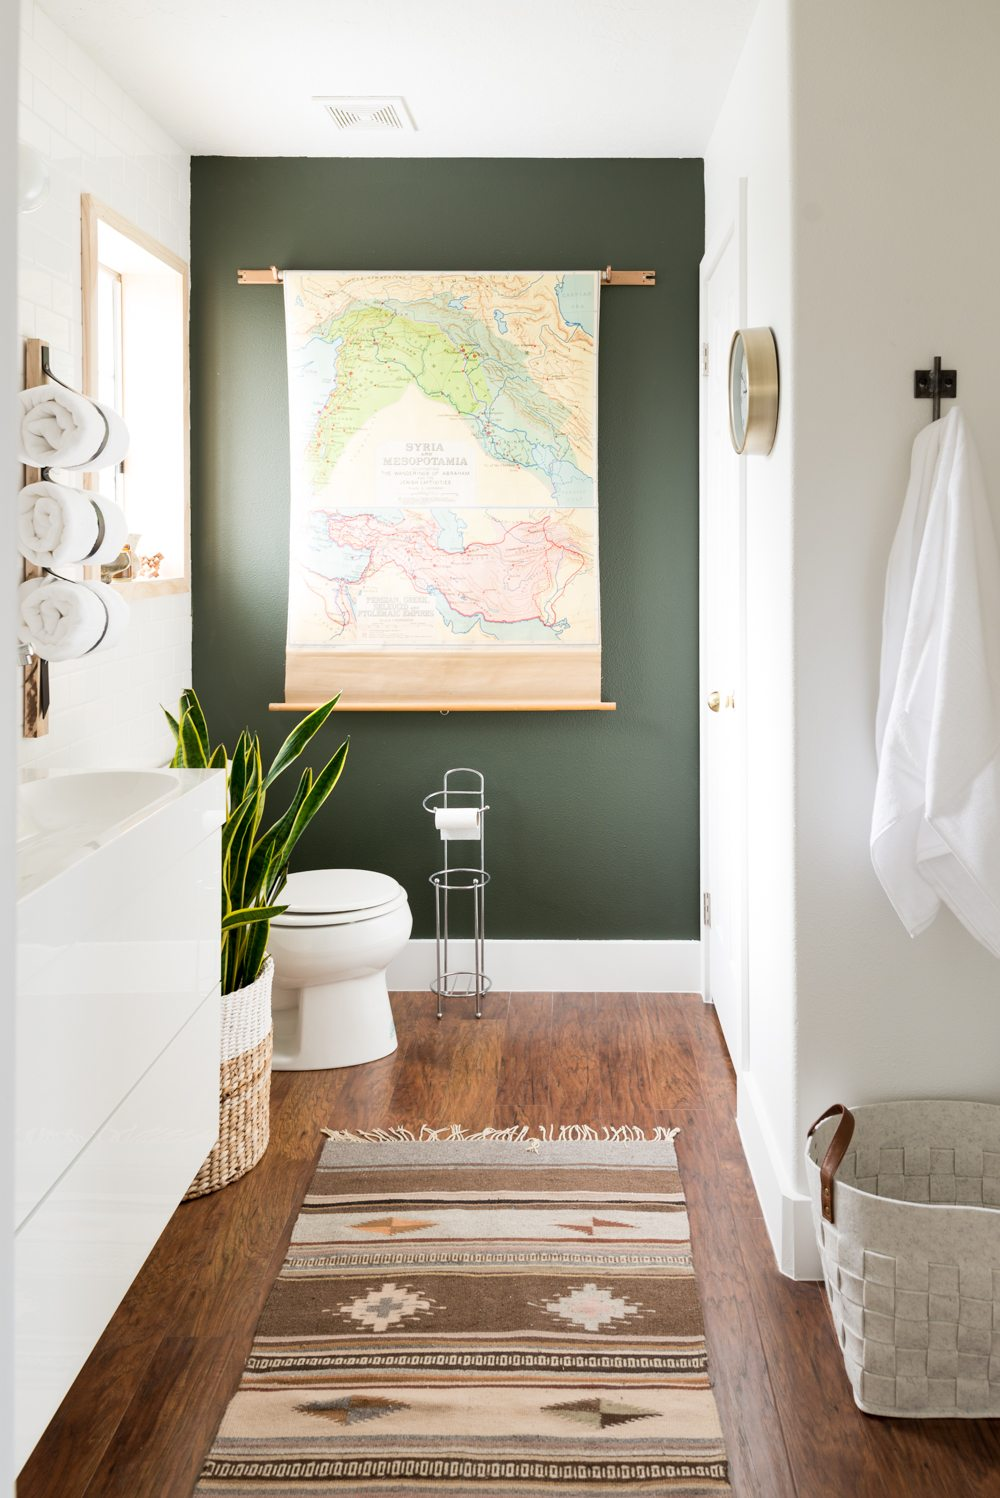 Image via Vintage Revivals, Paint color: Ripe Olive by Sherwin Williams